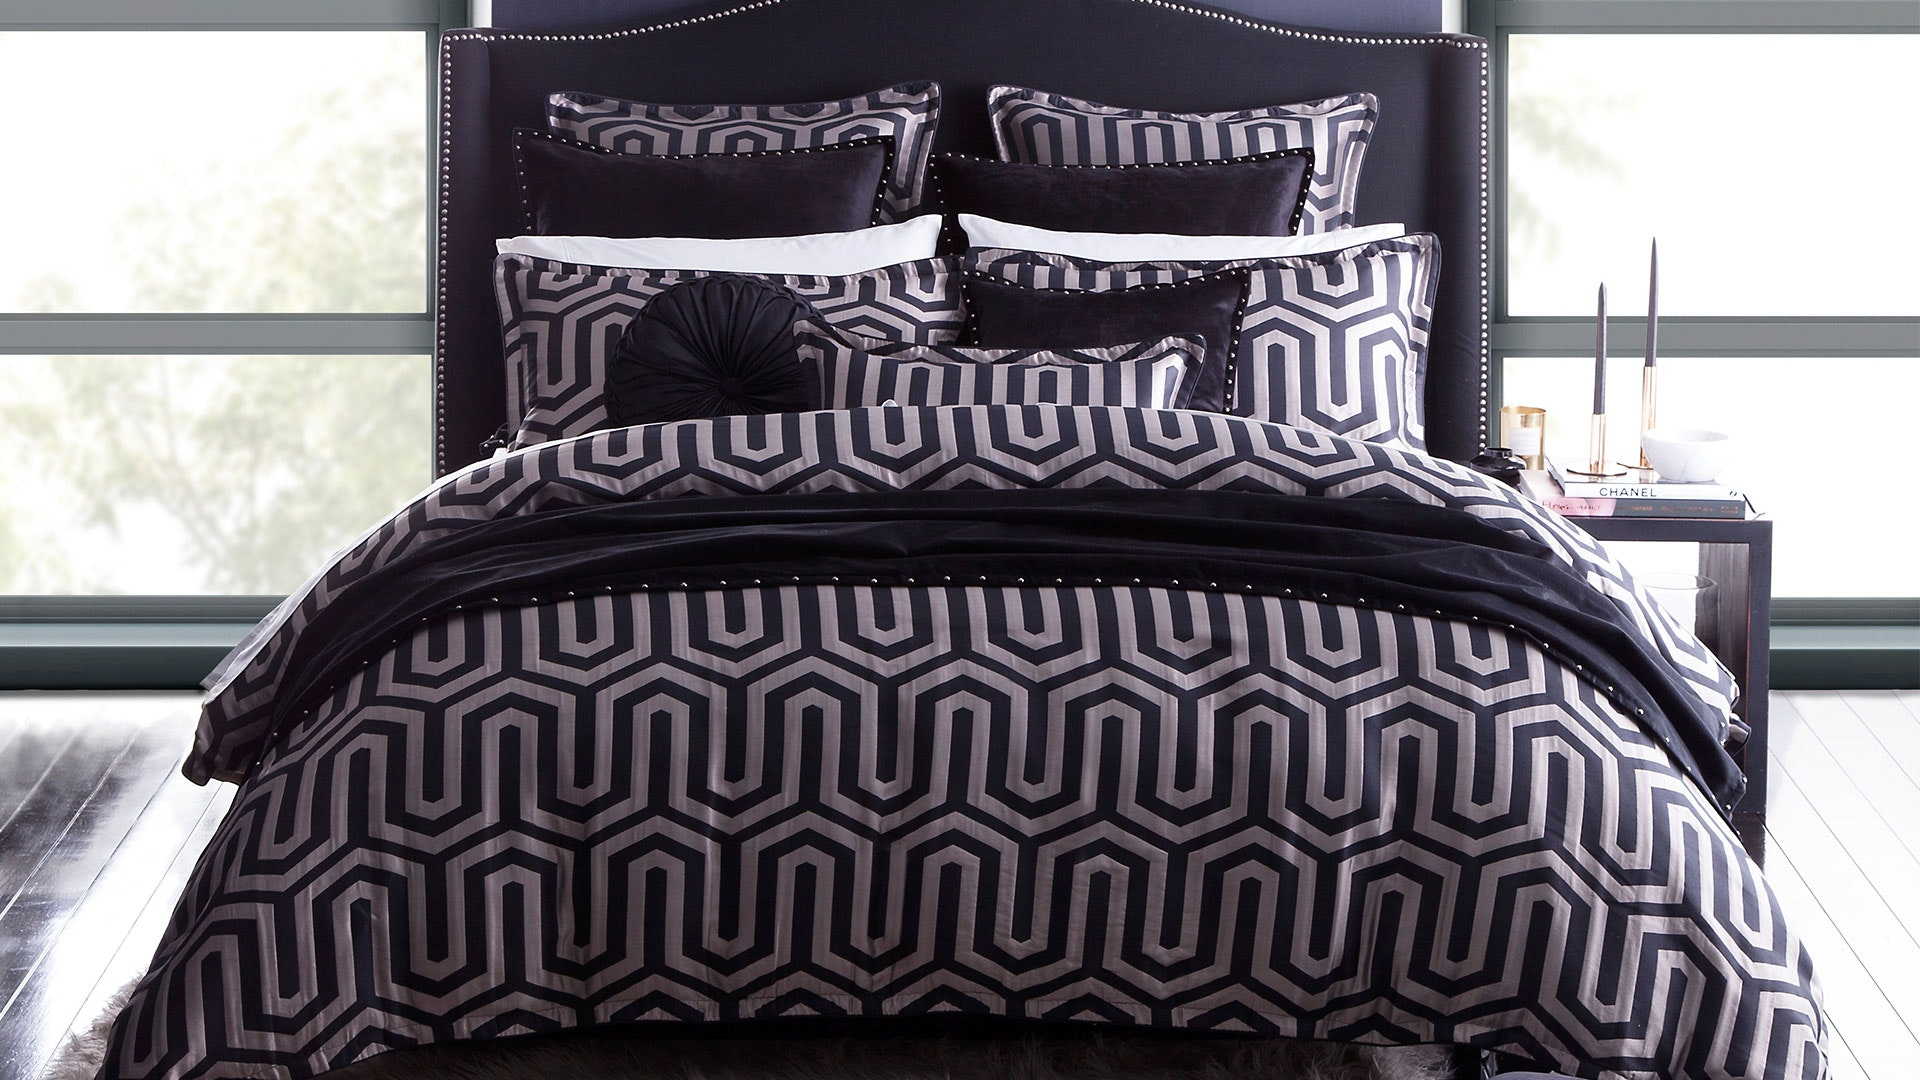 Chase Onyx Duvet Cover Set by Da Vinci